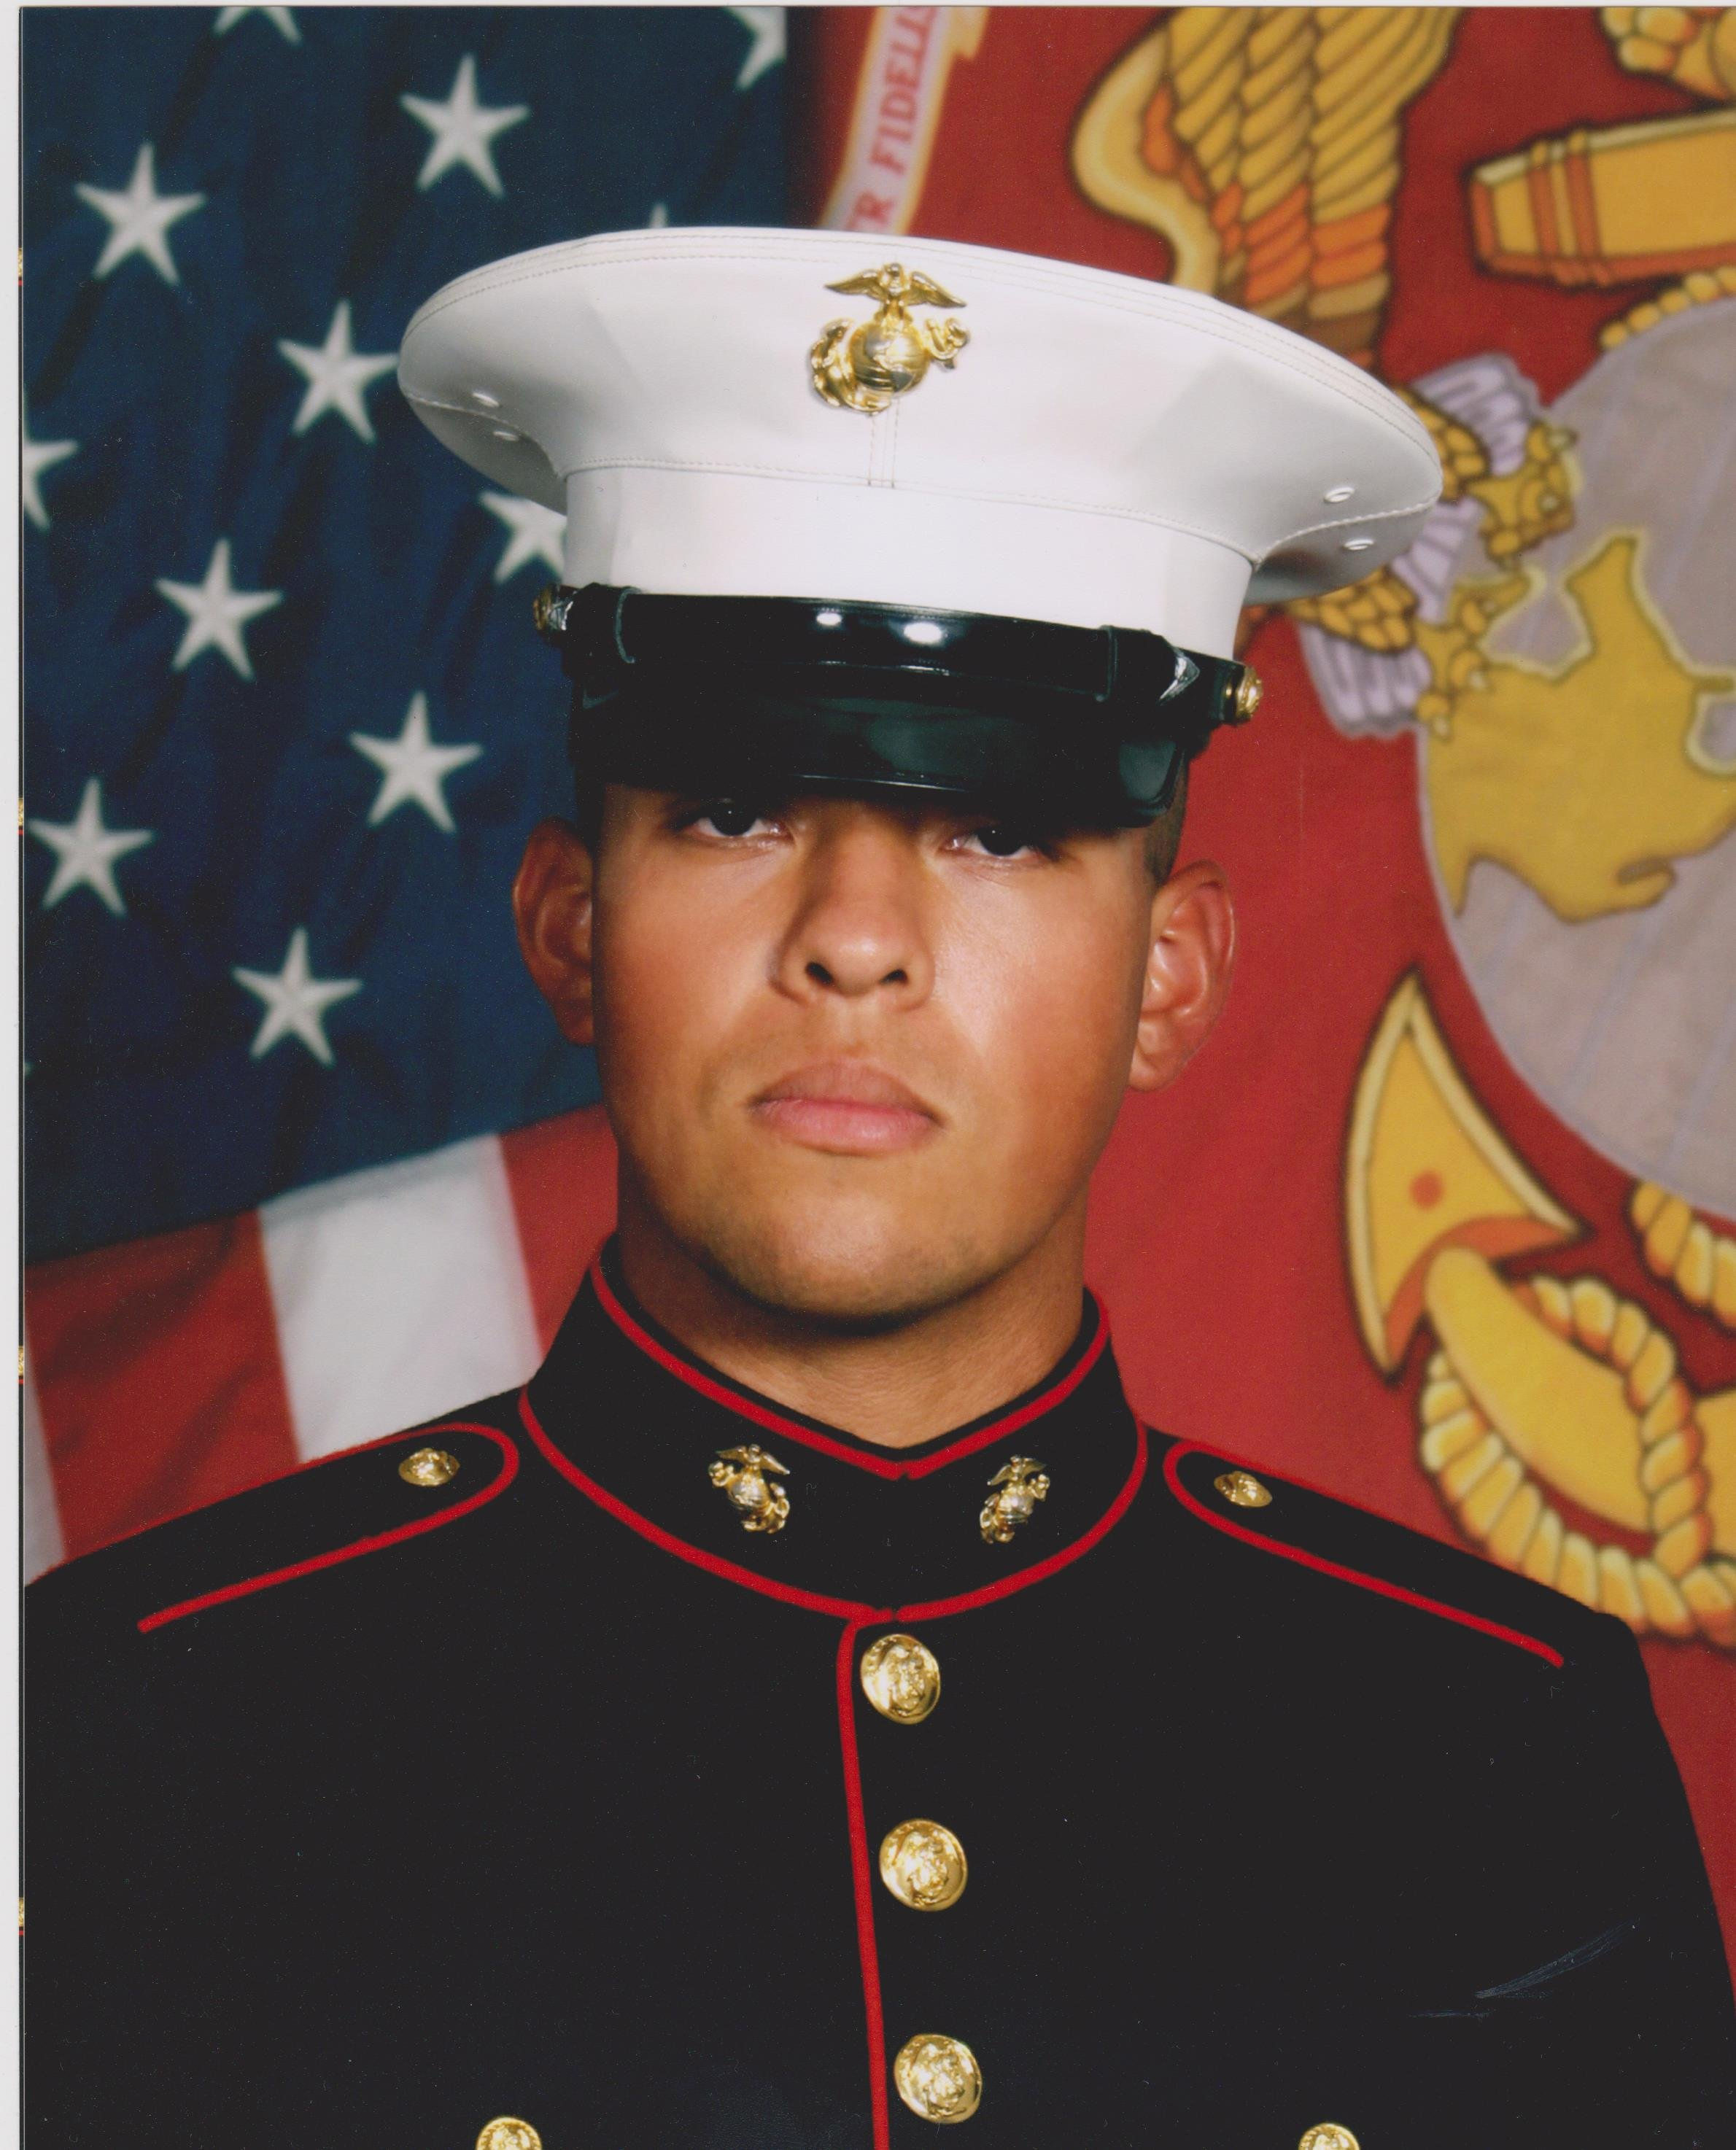 His brother, Fernando Romero, says his whole life, Alex wanted nothing more than to be a Marine. (Source: Fernando Romero)